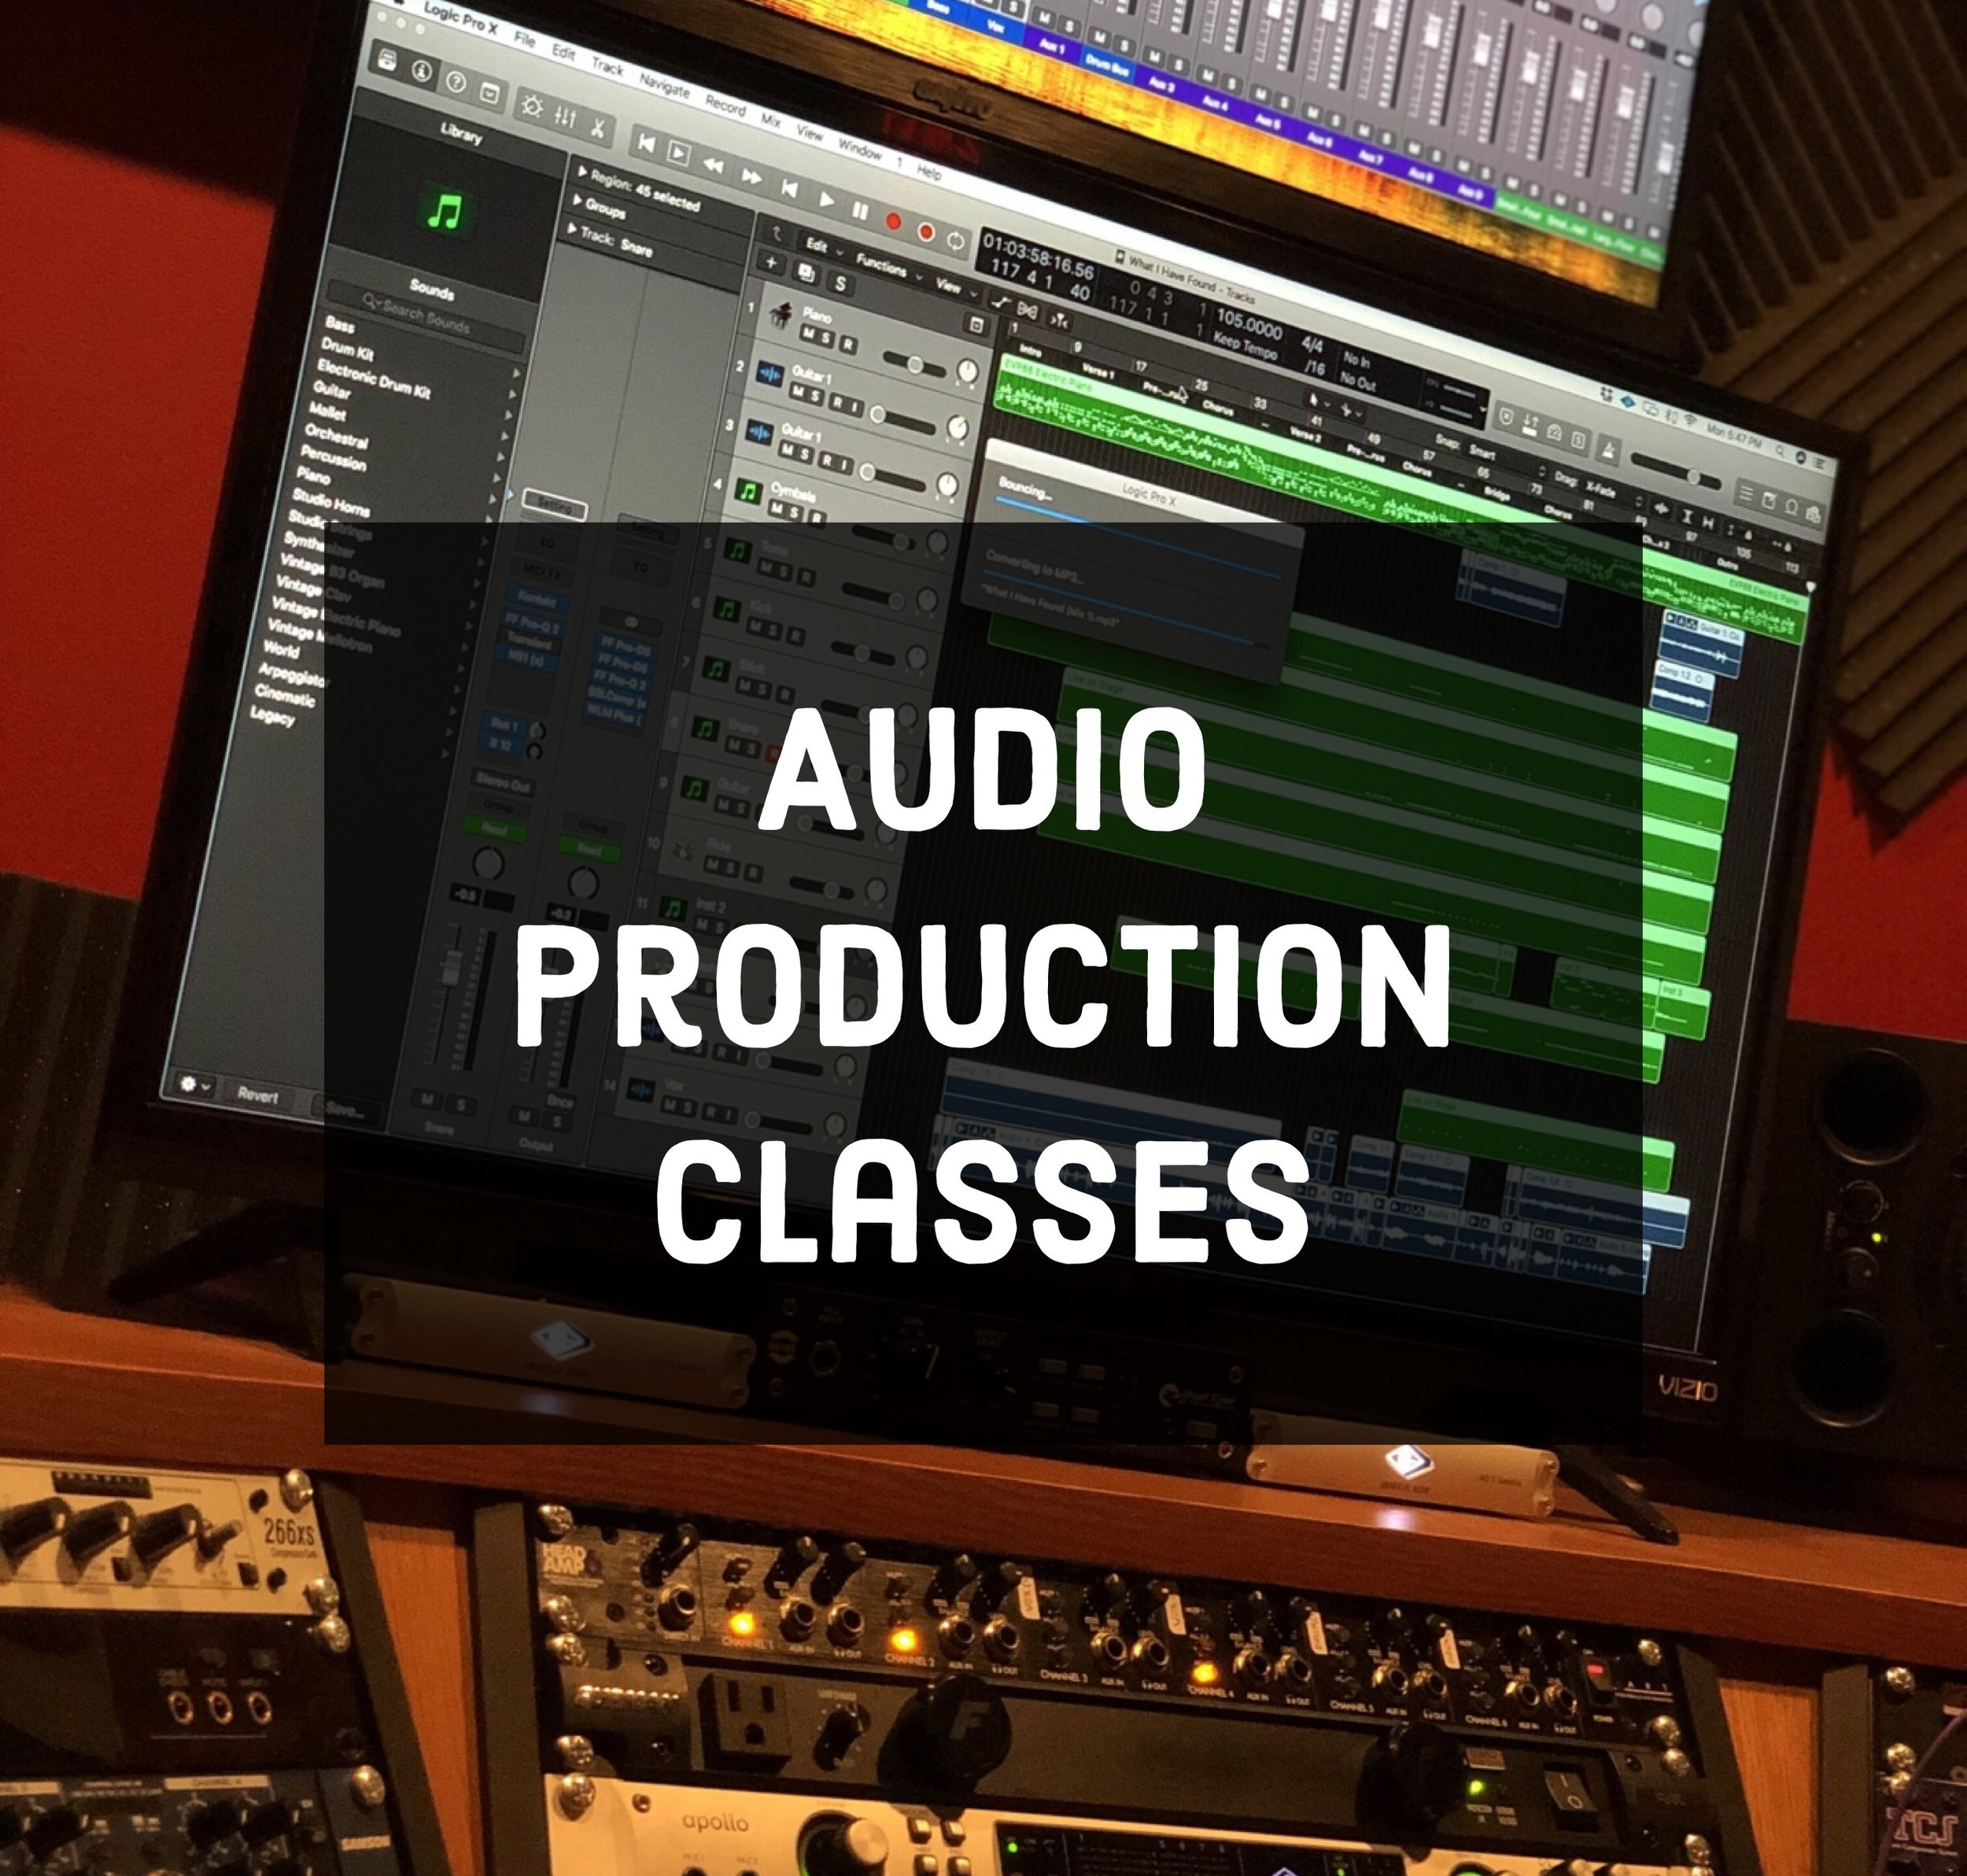 - Starting in 2019, Studio 117 will be offering audio production classes to the public. We have realized that in Central PA, there aren't many opportunities for technical training regarding Audio Production, unless you plan to pay multiple thousands of dollars for classes at local colleges. We aim to bridge the gap between the basement and the start of a successful career in audio production without the need for general education credits. At Studio 117, we have the industry standard equipment you need to jump right into the career without having to purchase thousands in equipment. It's a safe bet for anyone who is interested in audio production but is still unsure of their career path. Don't start your career in debt!Each course will be 10 classes (1-2 hours each) with 10 students max, and we are currently looking into funding for the possibility of offering scholarships to qualified applicants. If you would like to stay in the loop in the latest developments in our classes and when they will become available, please send us an email using the email button at the bottom of the page.Starting at $75/Class. Bulk discounts available soon!